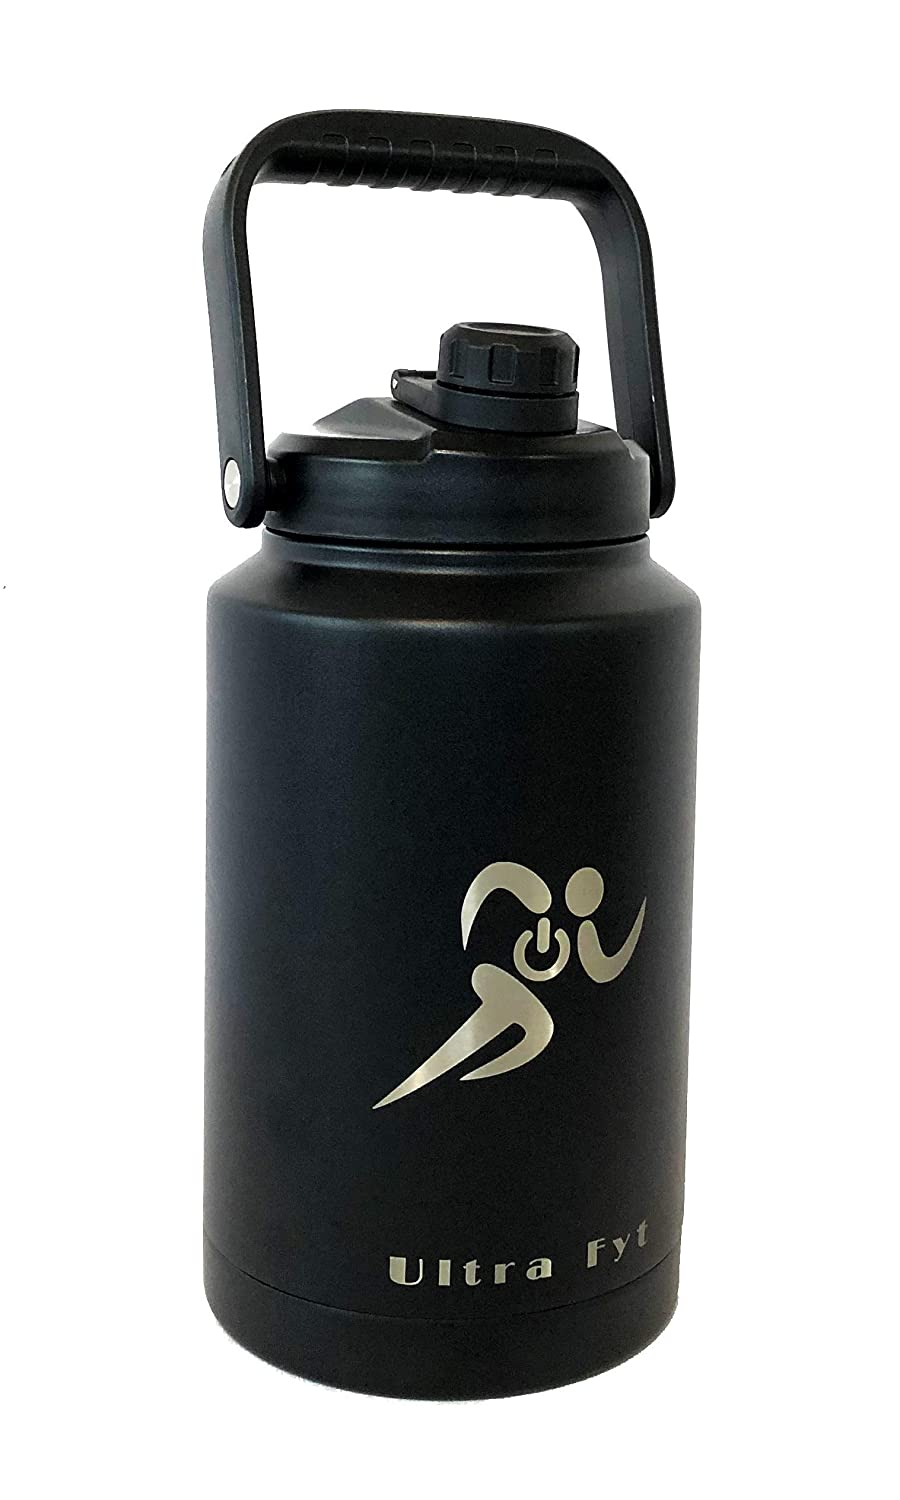 Ultra Fyt One Gallon Water Jug Vacuum Insulated Stainless Steel Wide Mouth one gallon Water bottle - Beer Growler - Reusable Fitness Workout Bottle for COLD or Hot water 128 oz water bottle (Black)